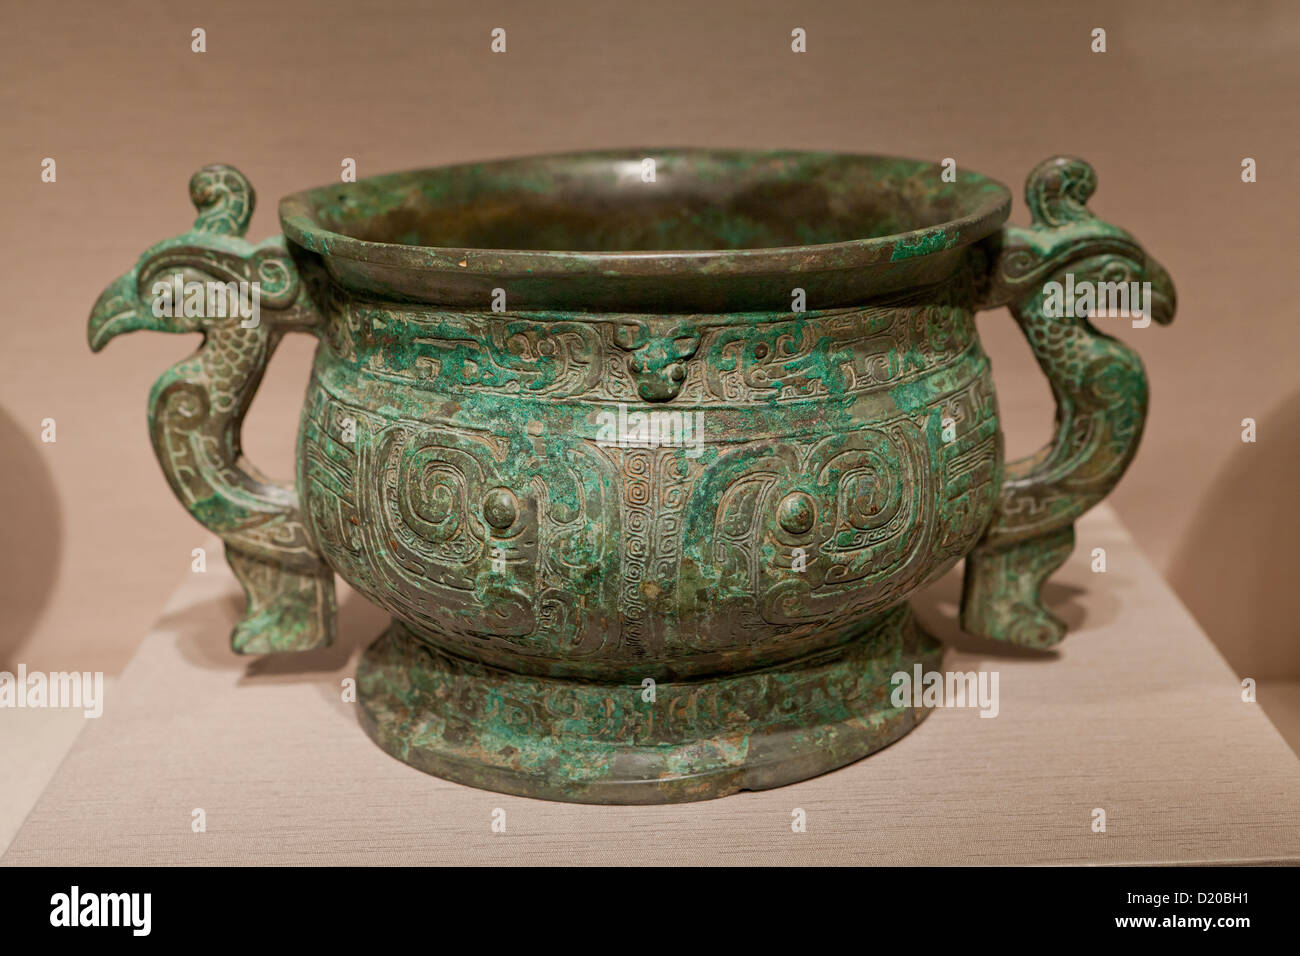 Ritual food container - Western Zhou dynasty, 10th century BC, China - Stock Image